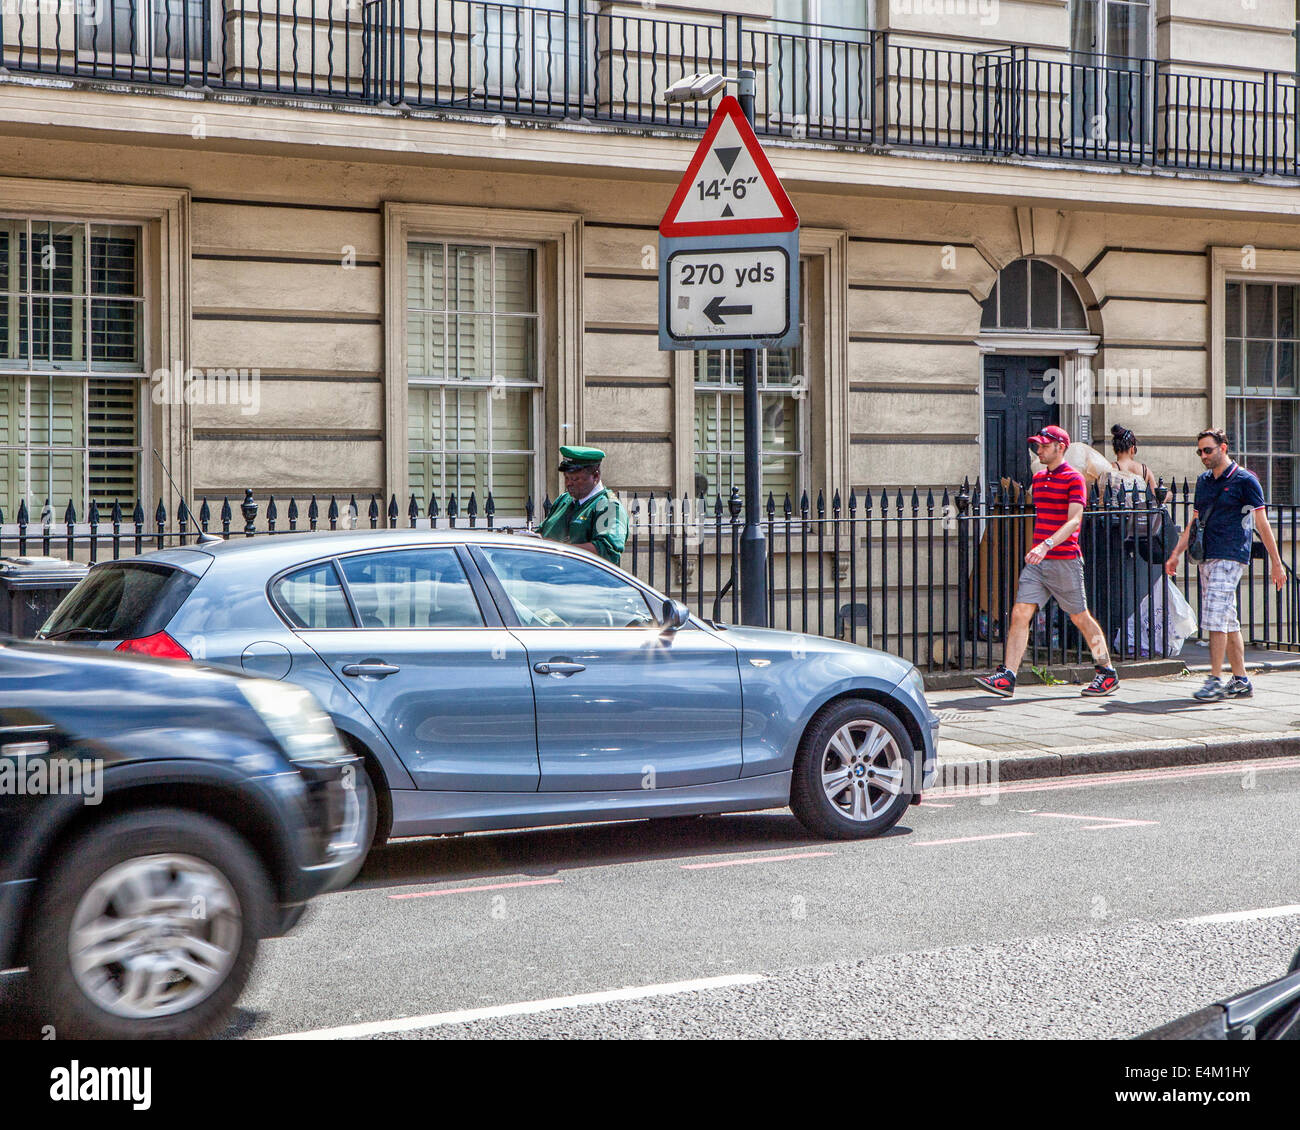 Traffic warden issuing PCN for illegally parked car - London UK - Stock Image